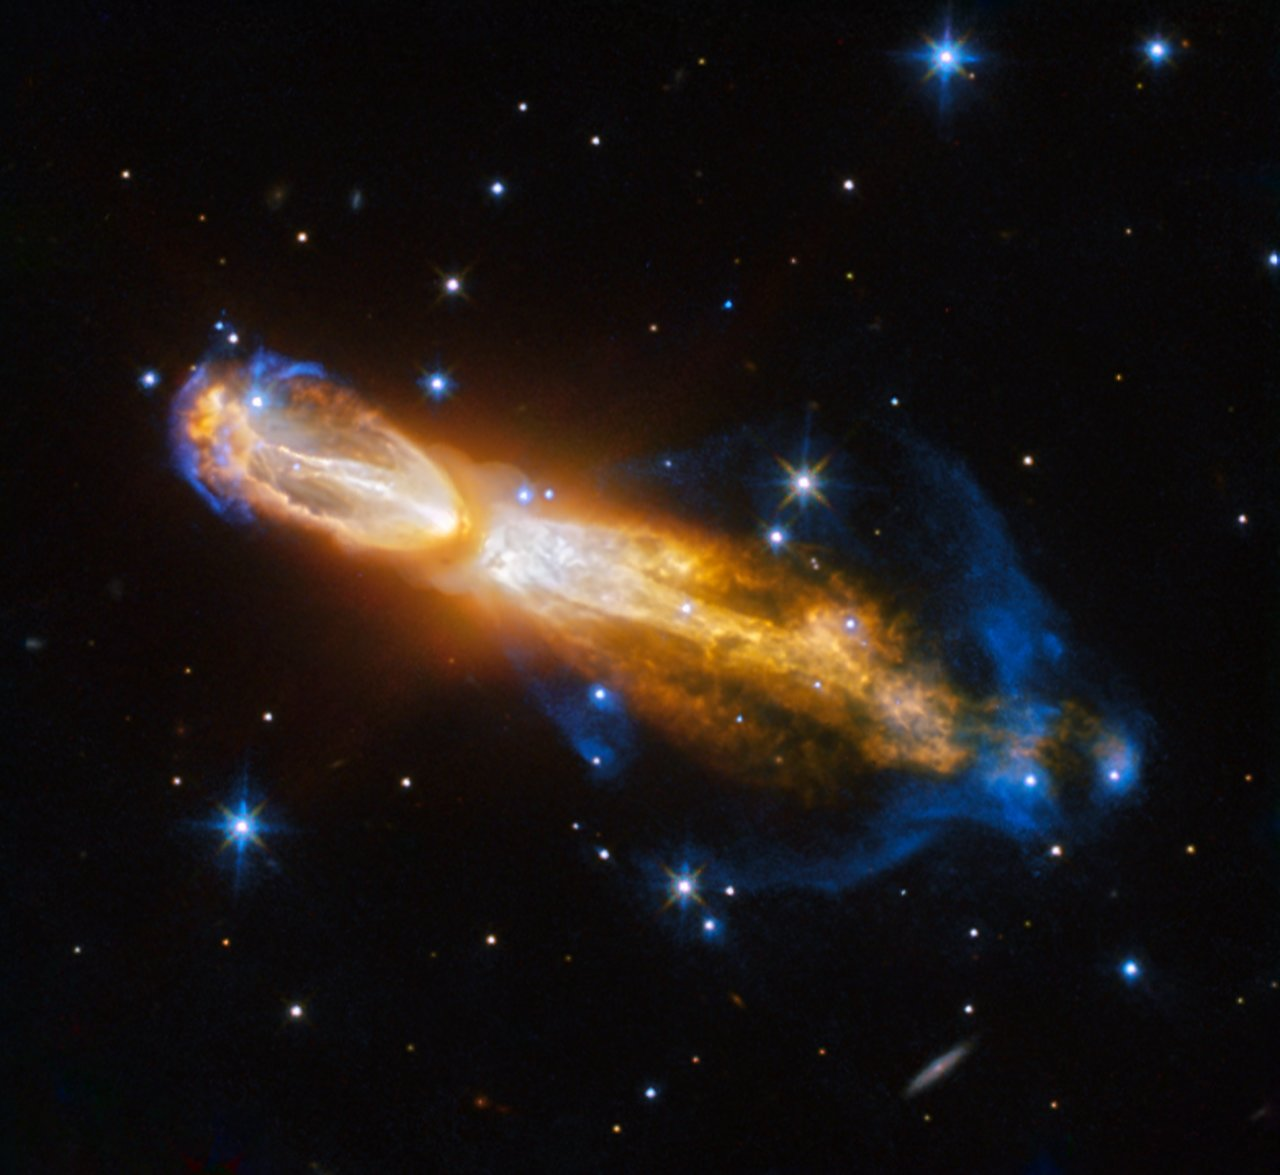 The Calabash Nebula, pictured here — which has the technical name OH 231.8+04.2 — is a spectacular example of the death of a low-mass star like the Sun. This image taken by the NASA/ESA Hubble Space Telescope shows the star going through a rapid transformation from a red giant to a planetary nebula, during which it blows its outer layers of gas and dust out into the surrounding space. The recently ejected material is spat out in opposite directions with immense speed — the gas shown in yellow is moving close to a million kilometres an hour. Astronomers rarely capture a star in this phase of its evolution because it occurs within the blink of an eye — in astronomical terms. Over the next thousand years the nebula is expected to evolve into a fully fledged planetary nebula. The nebula is also known as the Rotten Egg Nebula because it contains a lot of sulphur, an element that, when combined with other elements, smells like a rotten egg — but luckily, it resides over 5000 light-years away in the constellation of Puppis (The Poop deck).